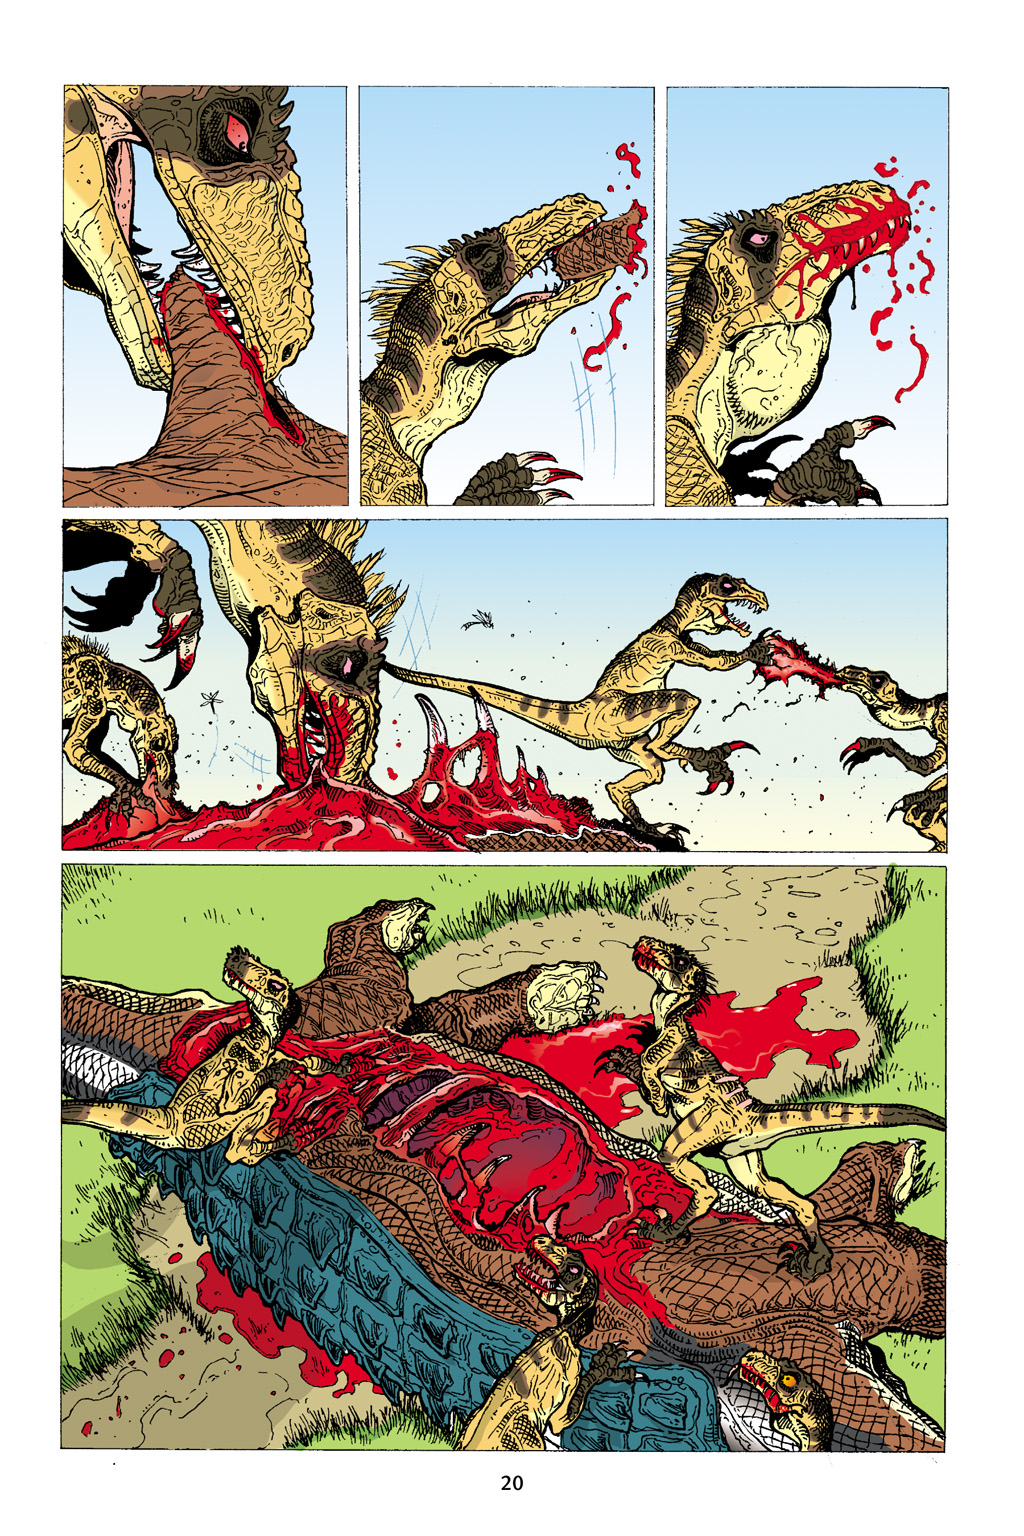 Age of Reptiles Omnibus Chap 1 - Next Chap 2